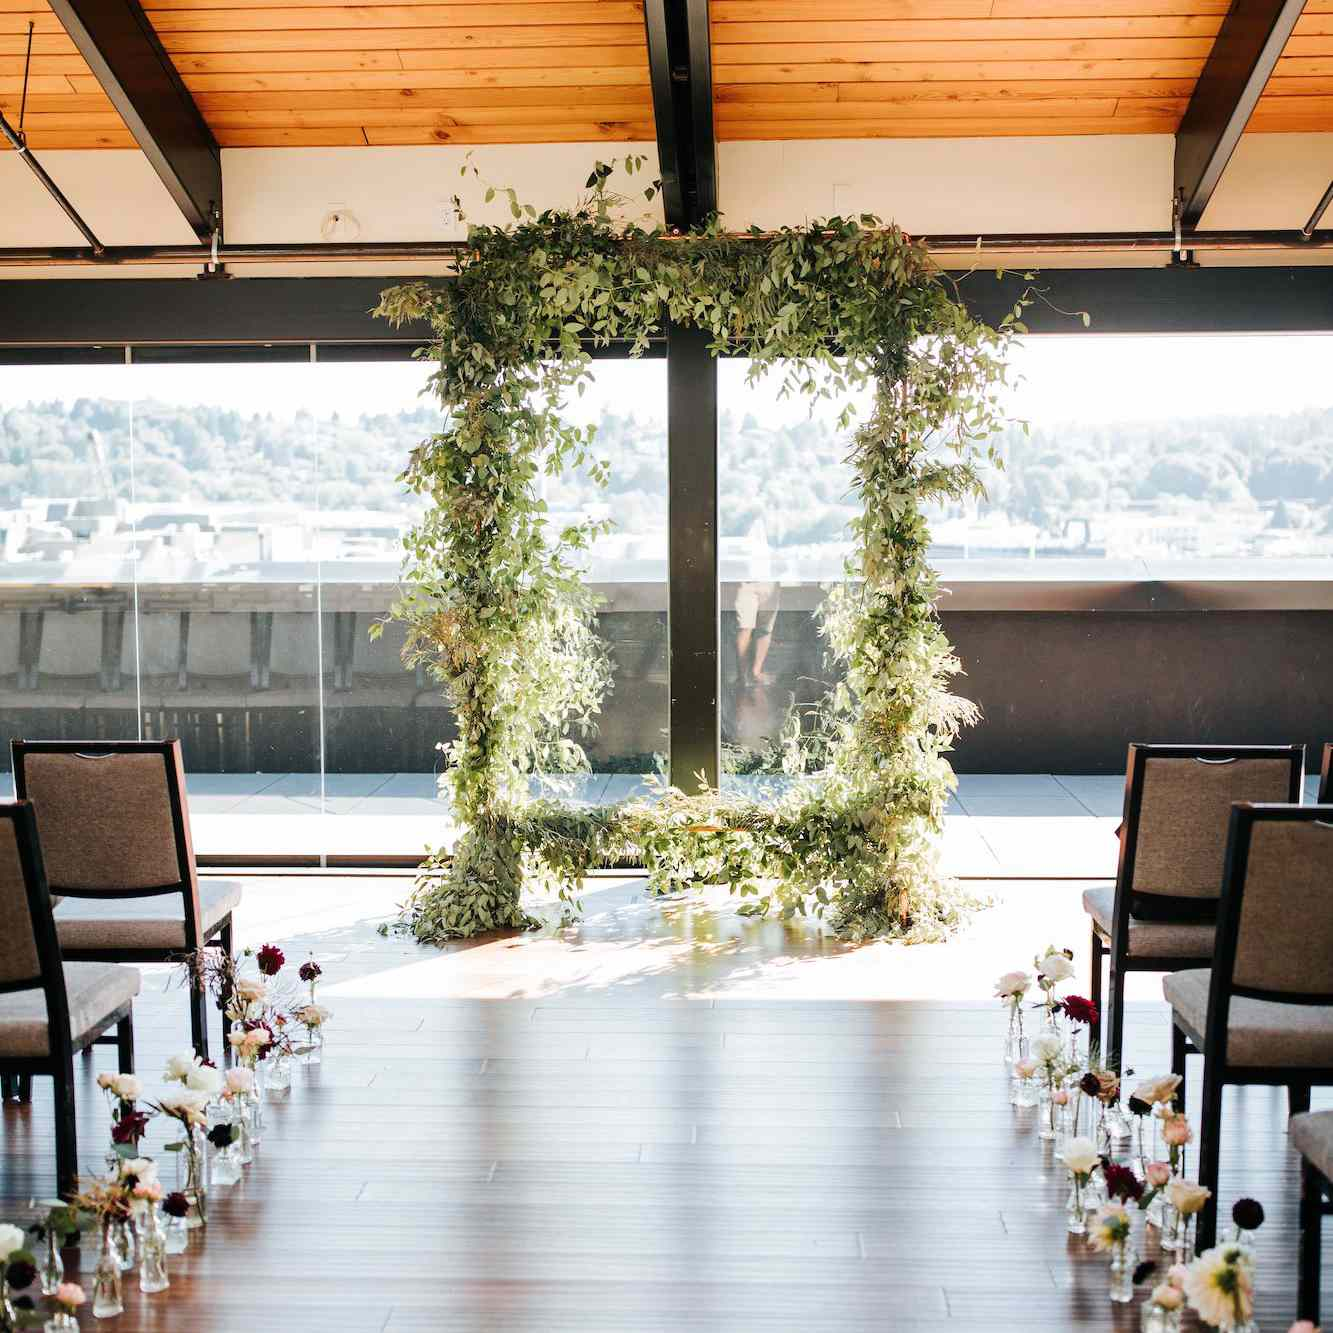 An indoor ceremony with glass vases of roses lining the aisle and a leafy, rectangular ceremony arch